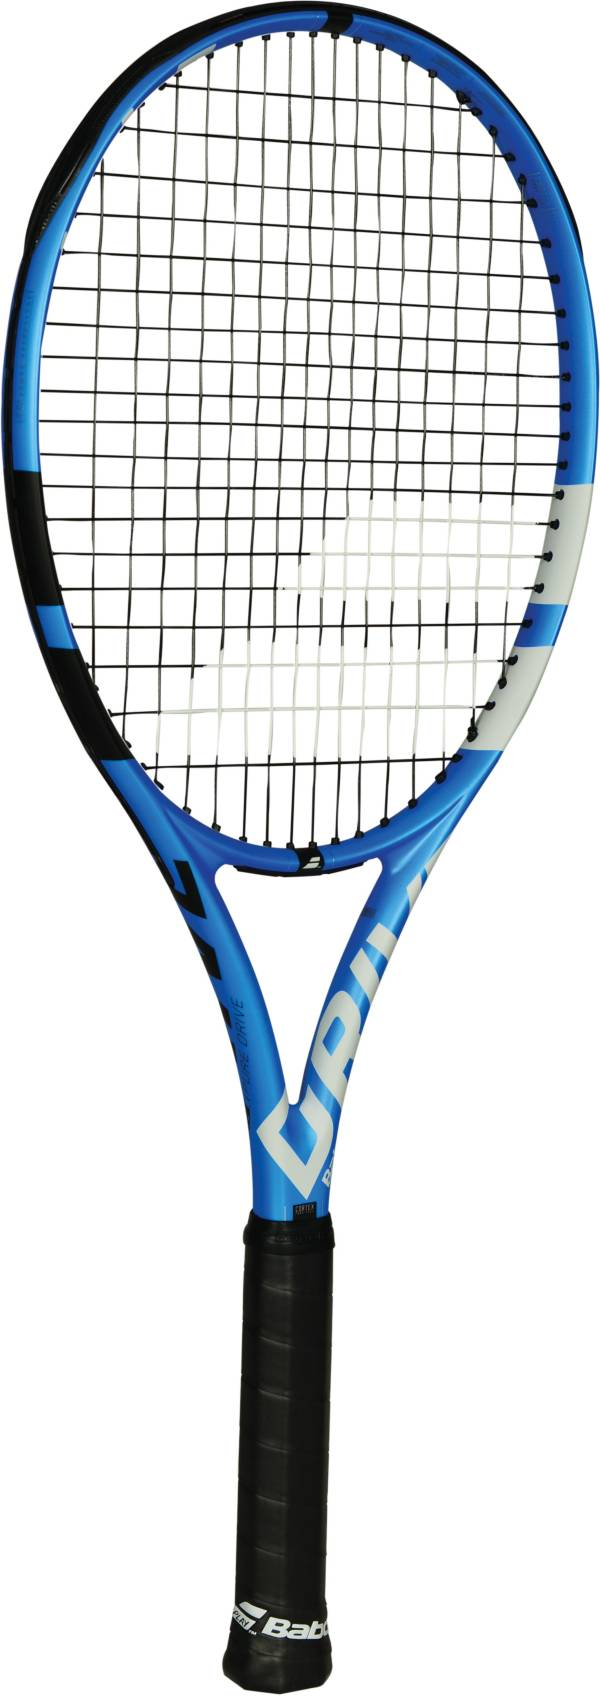 Babolat Pure Drive Tennis Racquet product image